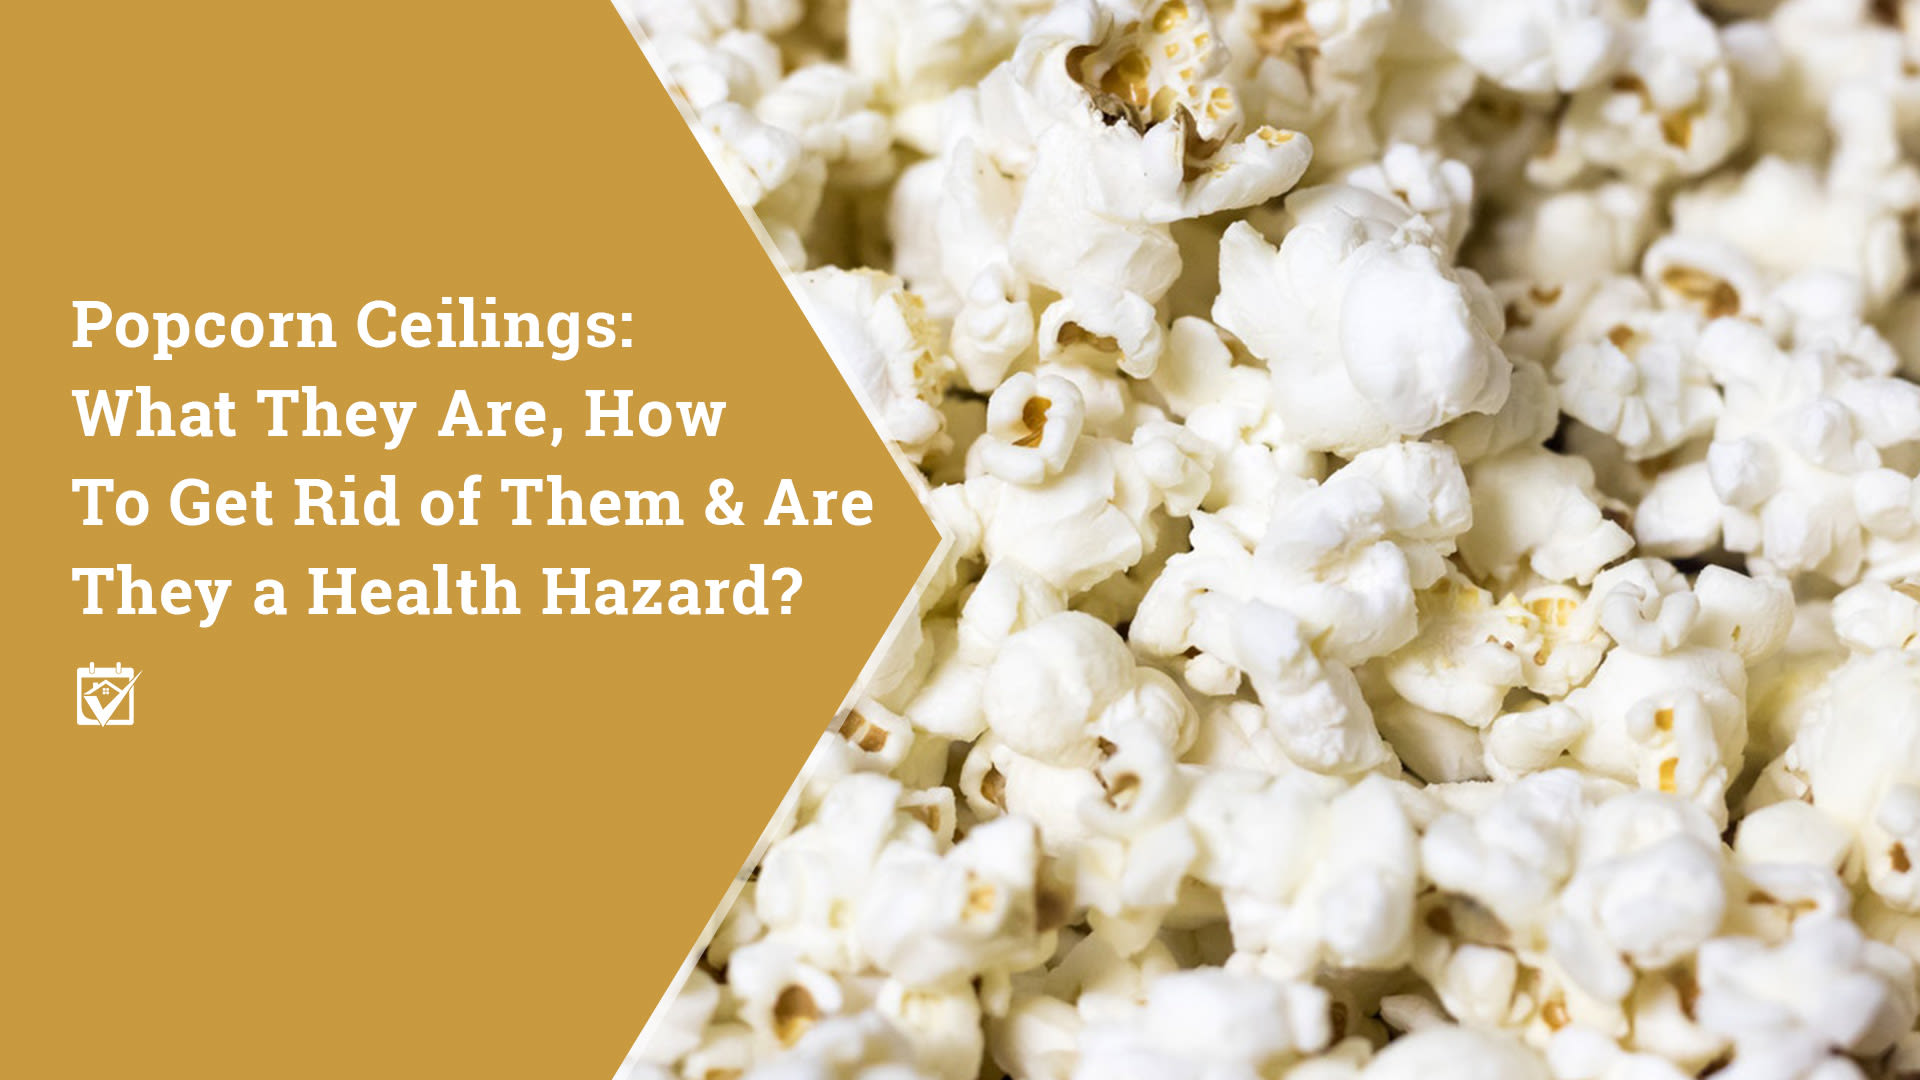 Popcorn Ceilings: What They Are, How To Get Rid of Them, & Are They a Health Hazard?